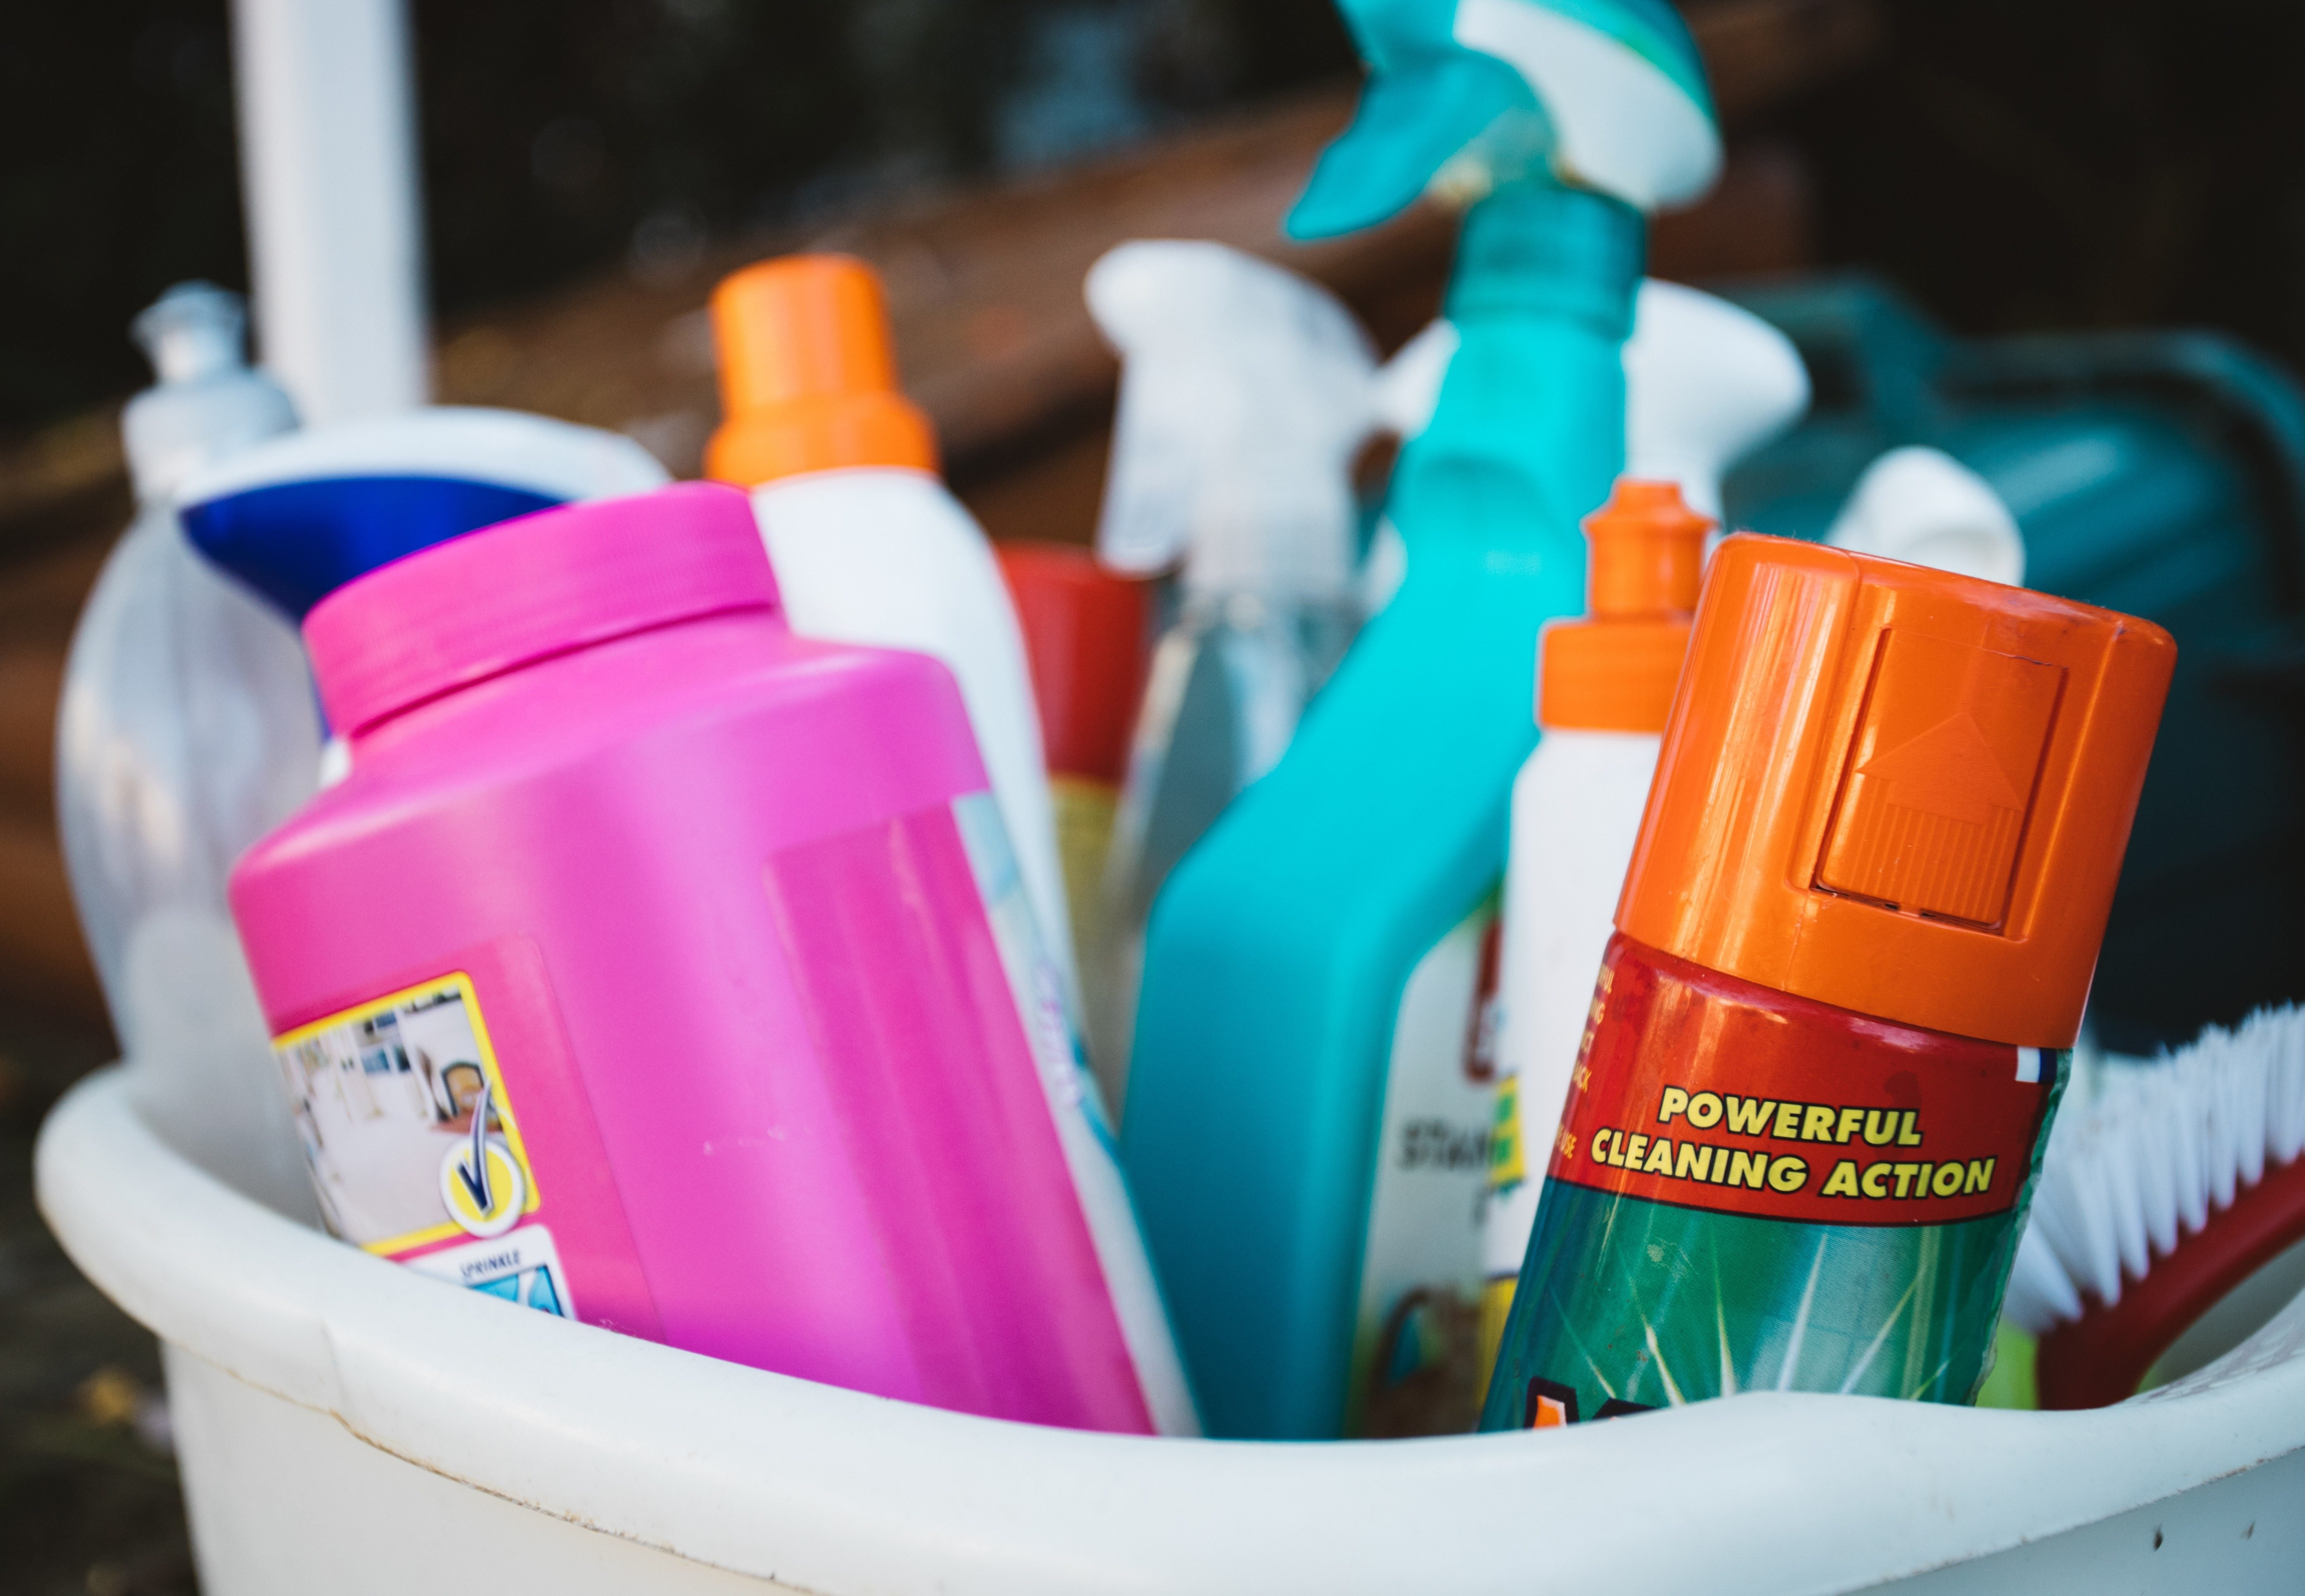 A basket full of cleaning products with the words powerful cleaning action on show